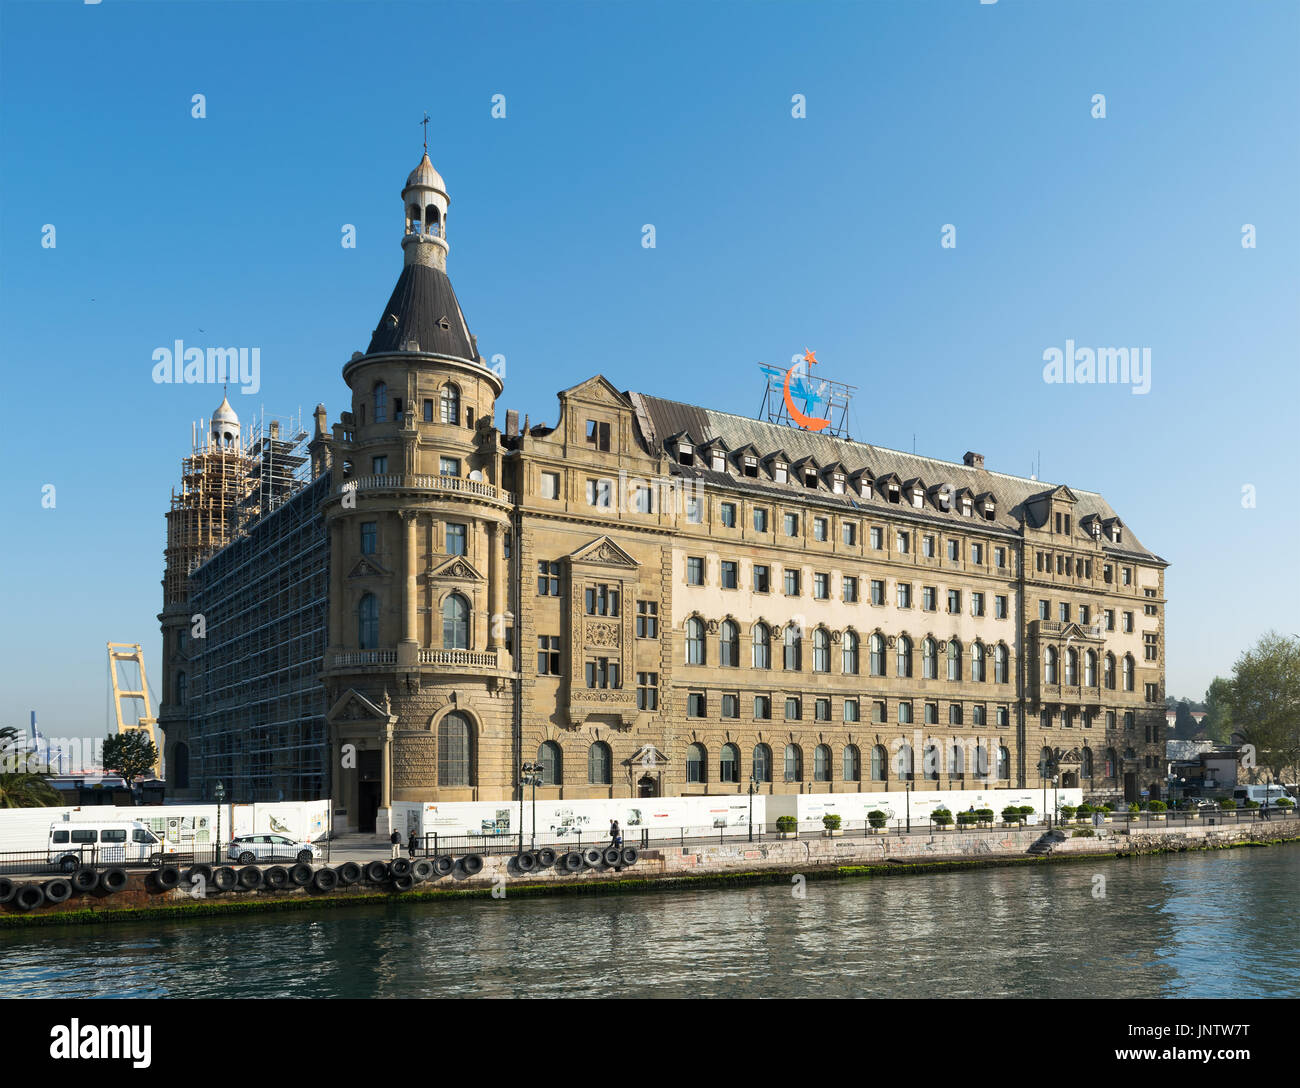 Istanbul, Turkey - April 27, 2017: Haydarpasha Railway Terminal, situated in the Bosphorus, Kadikoy, Istanbul, Turkey, - Stock Photo